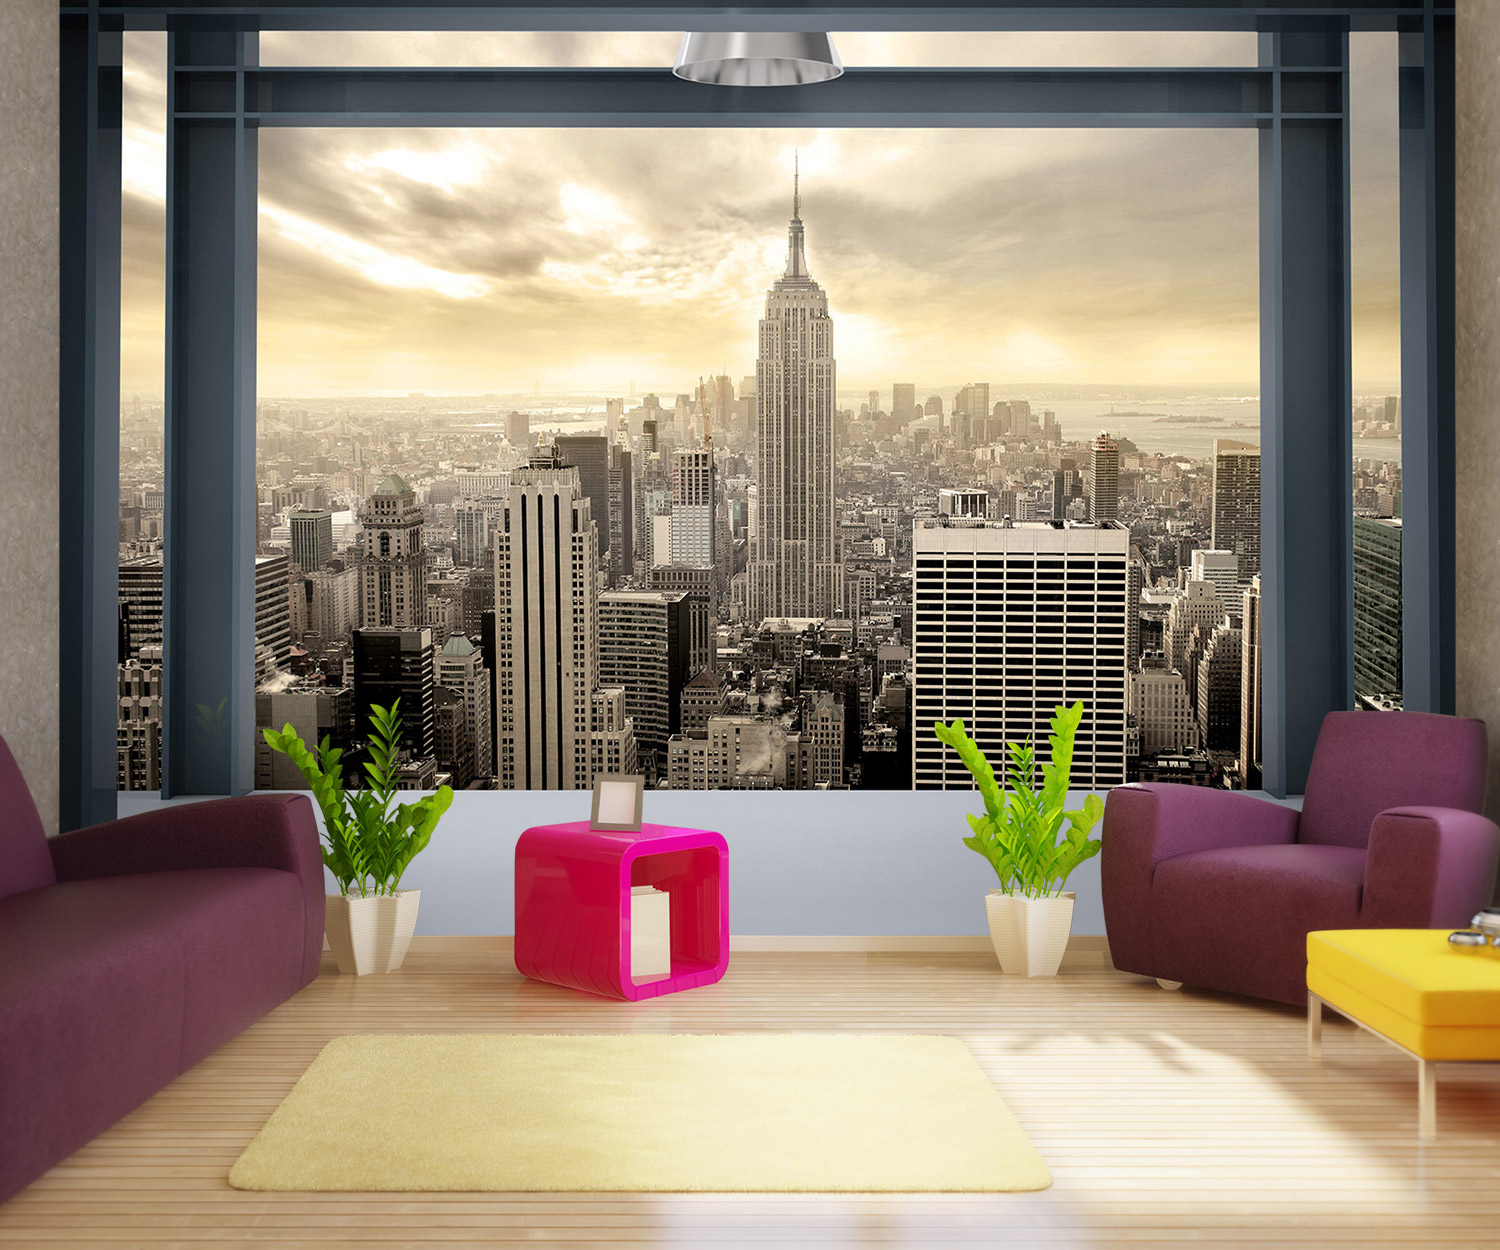 wandmotiv24 fototapete blick aus dem fenster von new york tapete kunstdruck wandbild. Black Bedroom Furniture Sets. Home Design Ideas